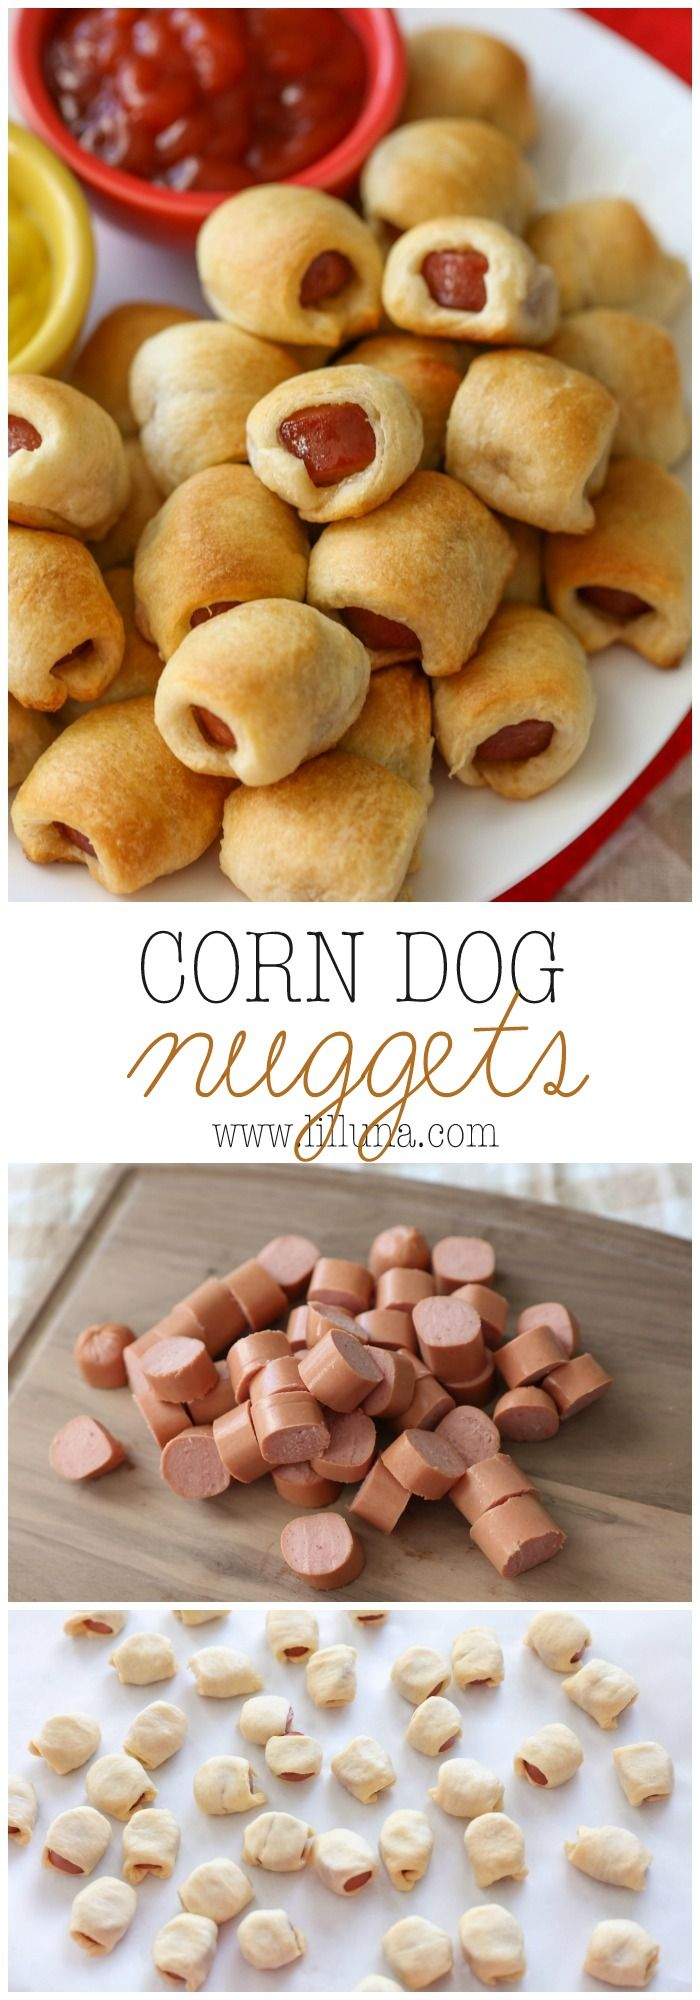 Corn Dog Nuggets - it's the family's new favorite recipe! It's simple, delicious…